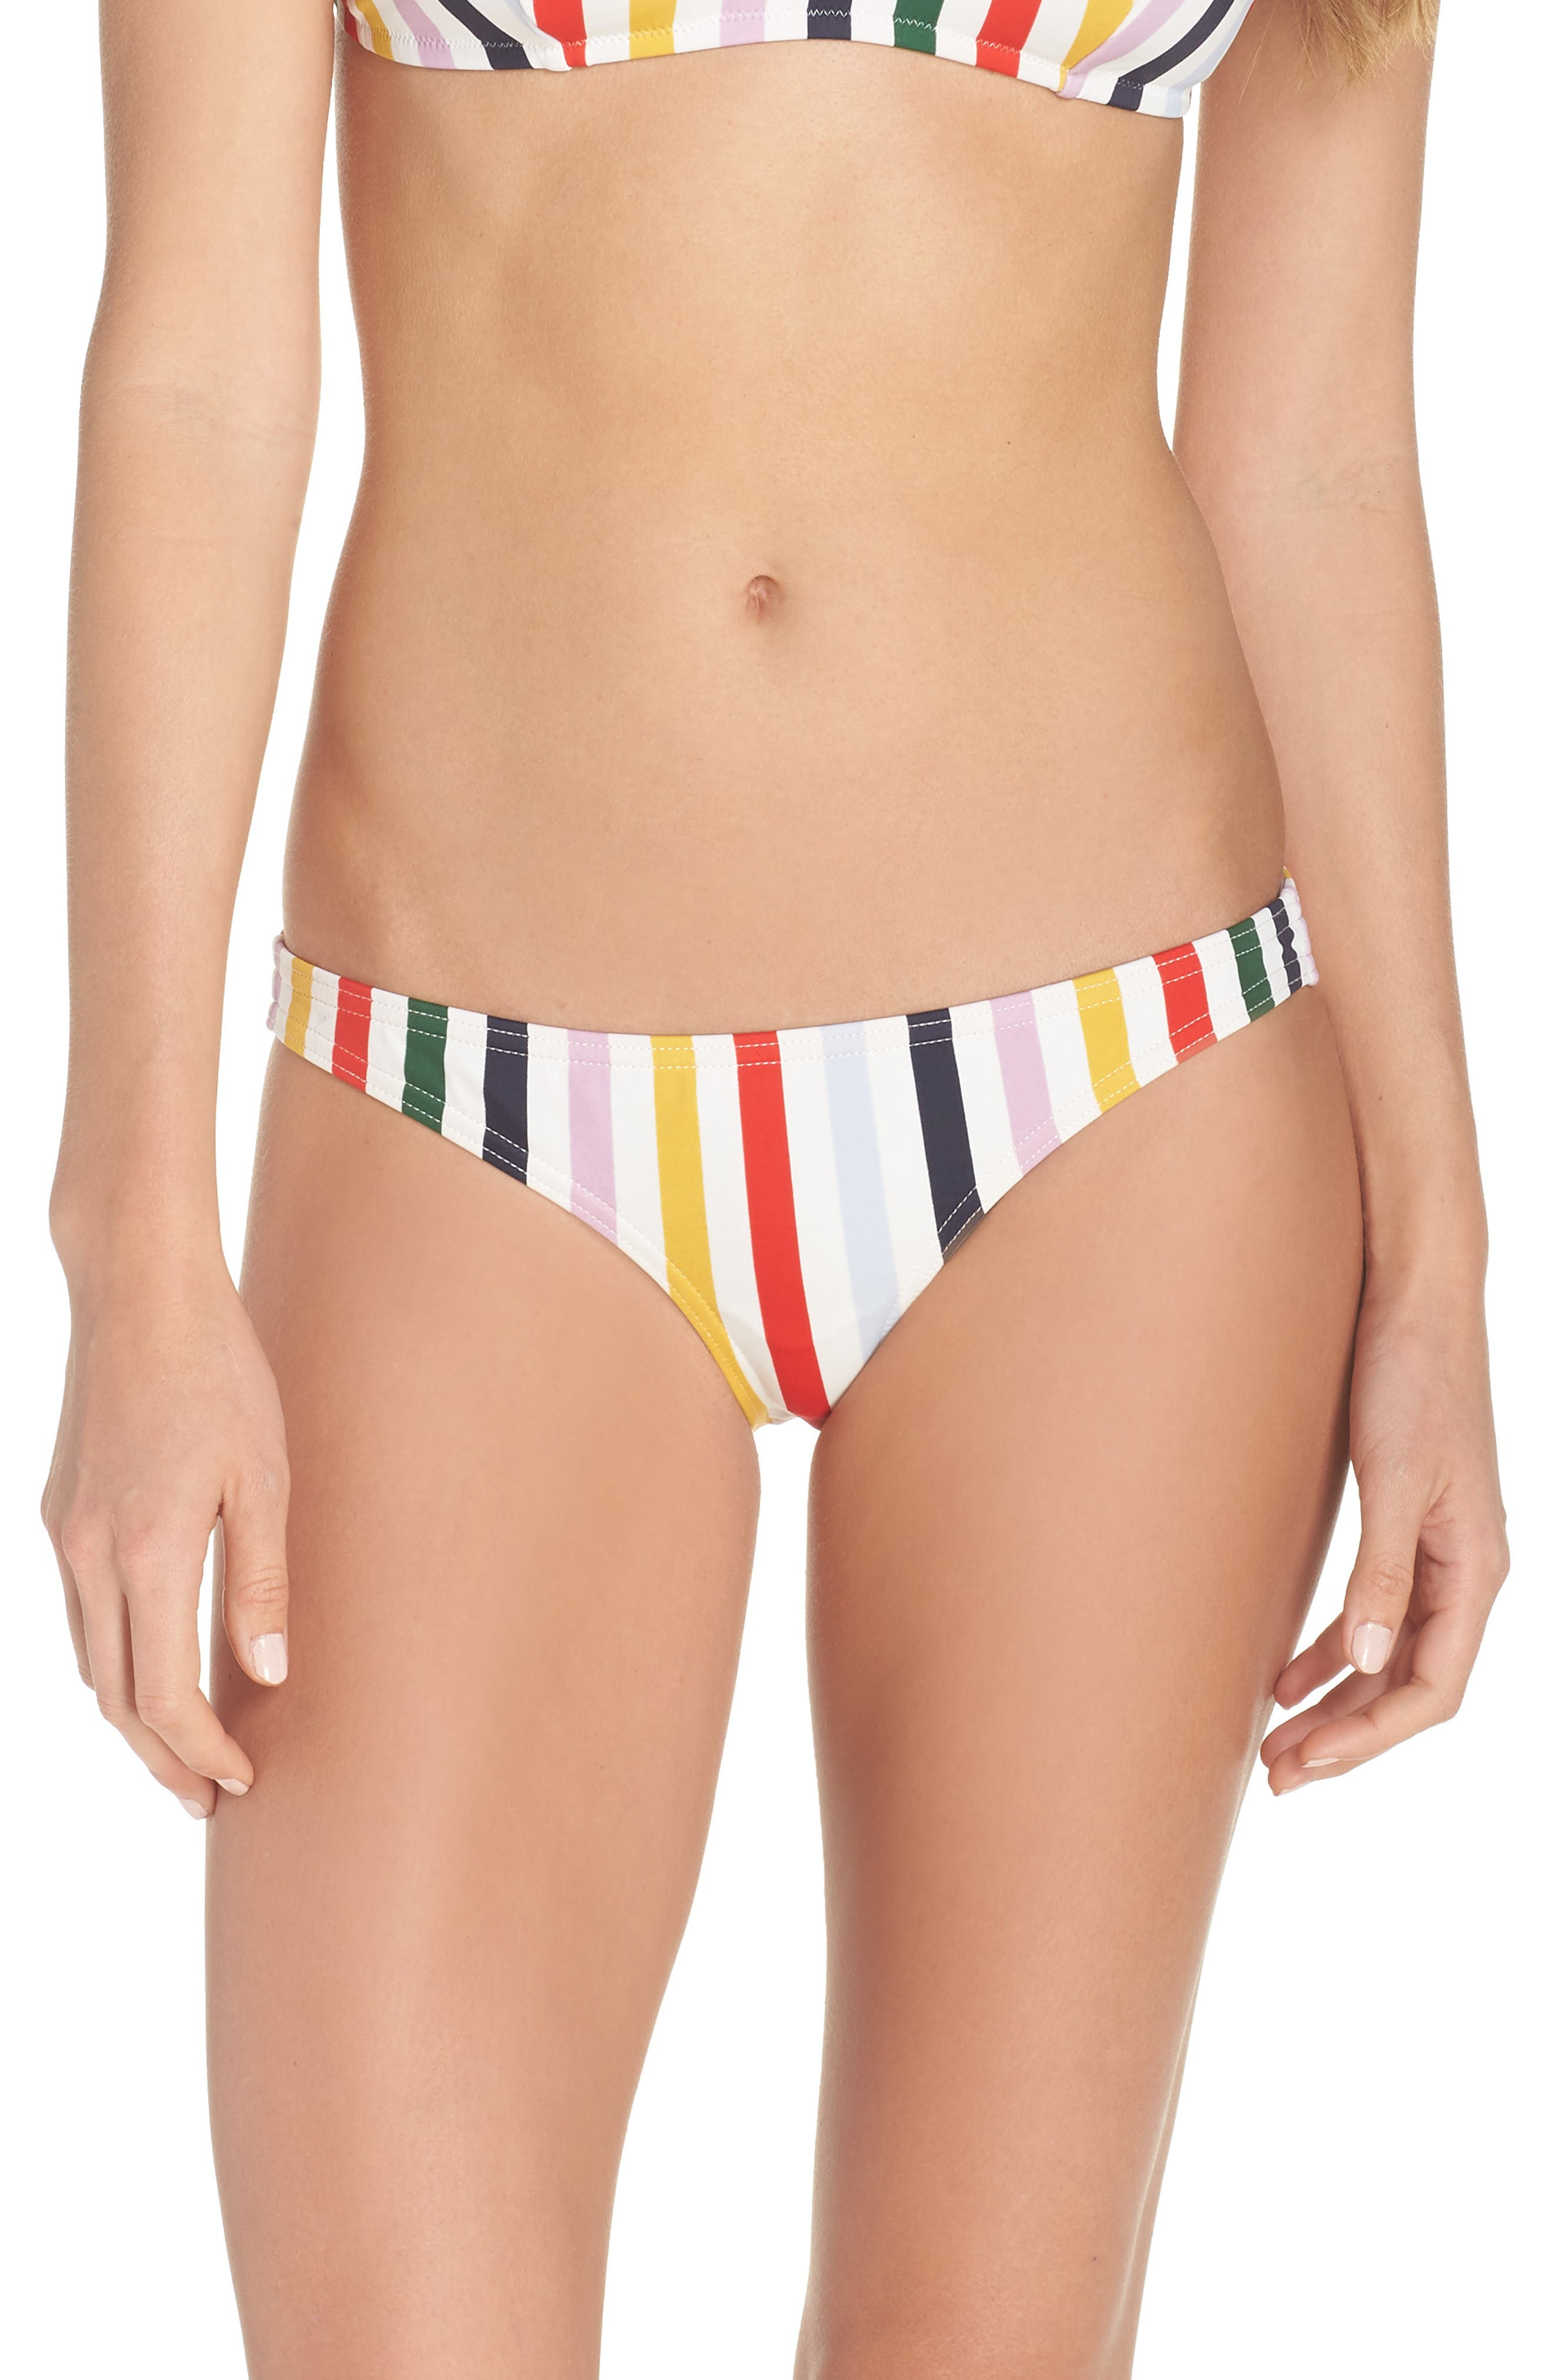 Holiday Stripe Lowrider Bikini Bottoms,                         Main,                         color, IVORY RICH GOLD MULTI